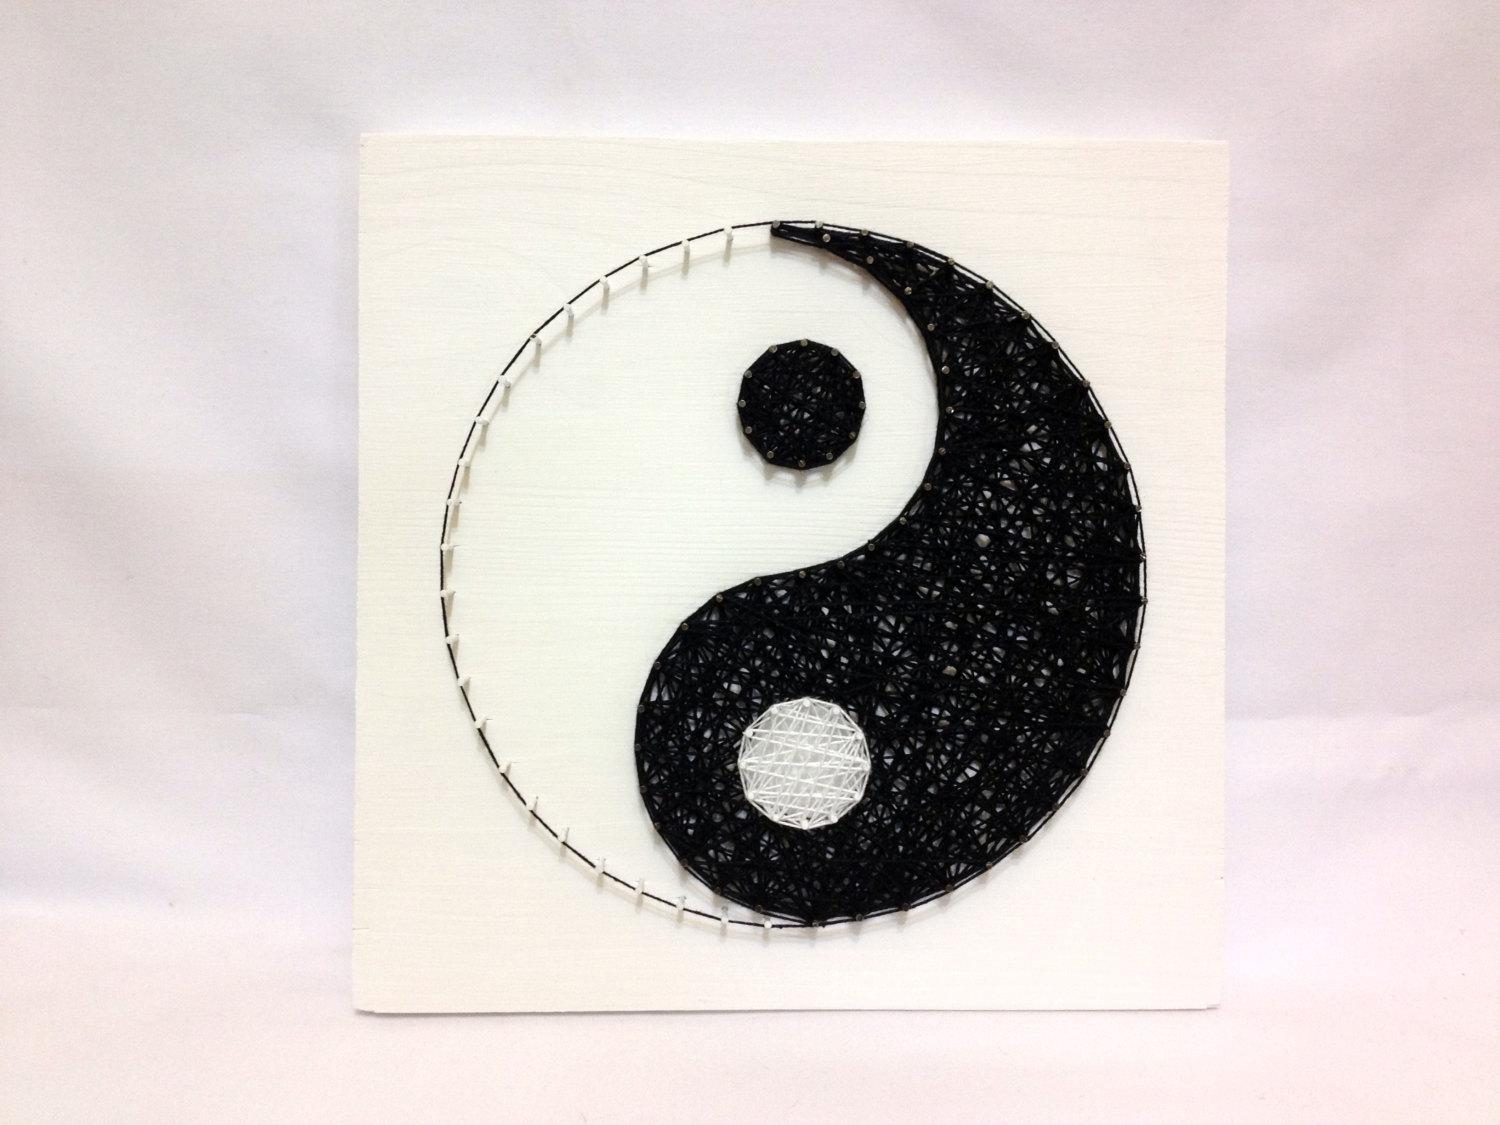 String Art Yin Yang Sign Wall Art Yin Yang Home Decor Black Intended For Yin Yang Wall Art (Image 8 of 20)